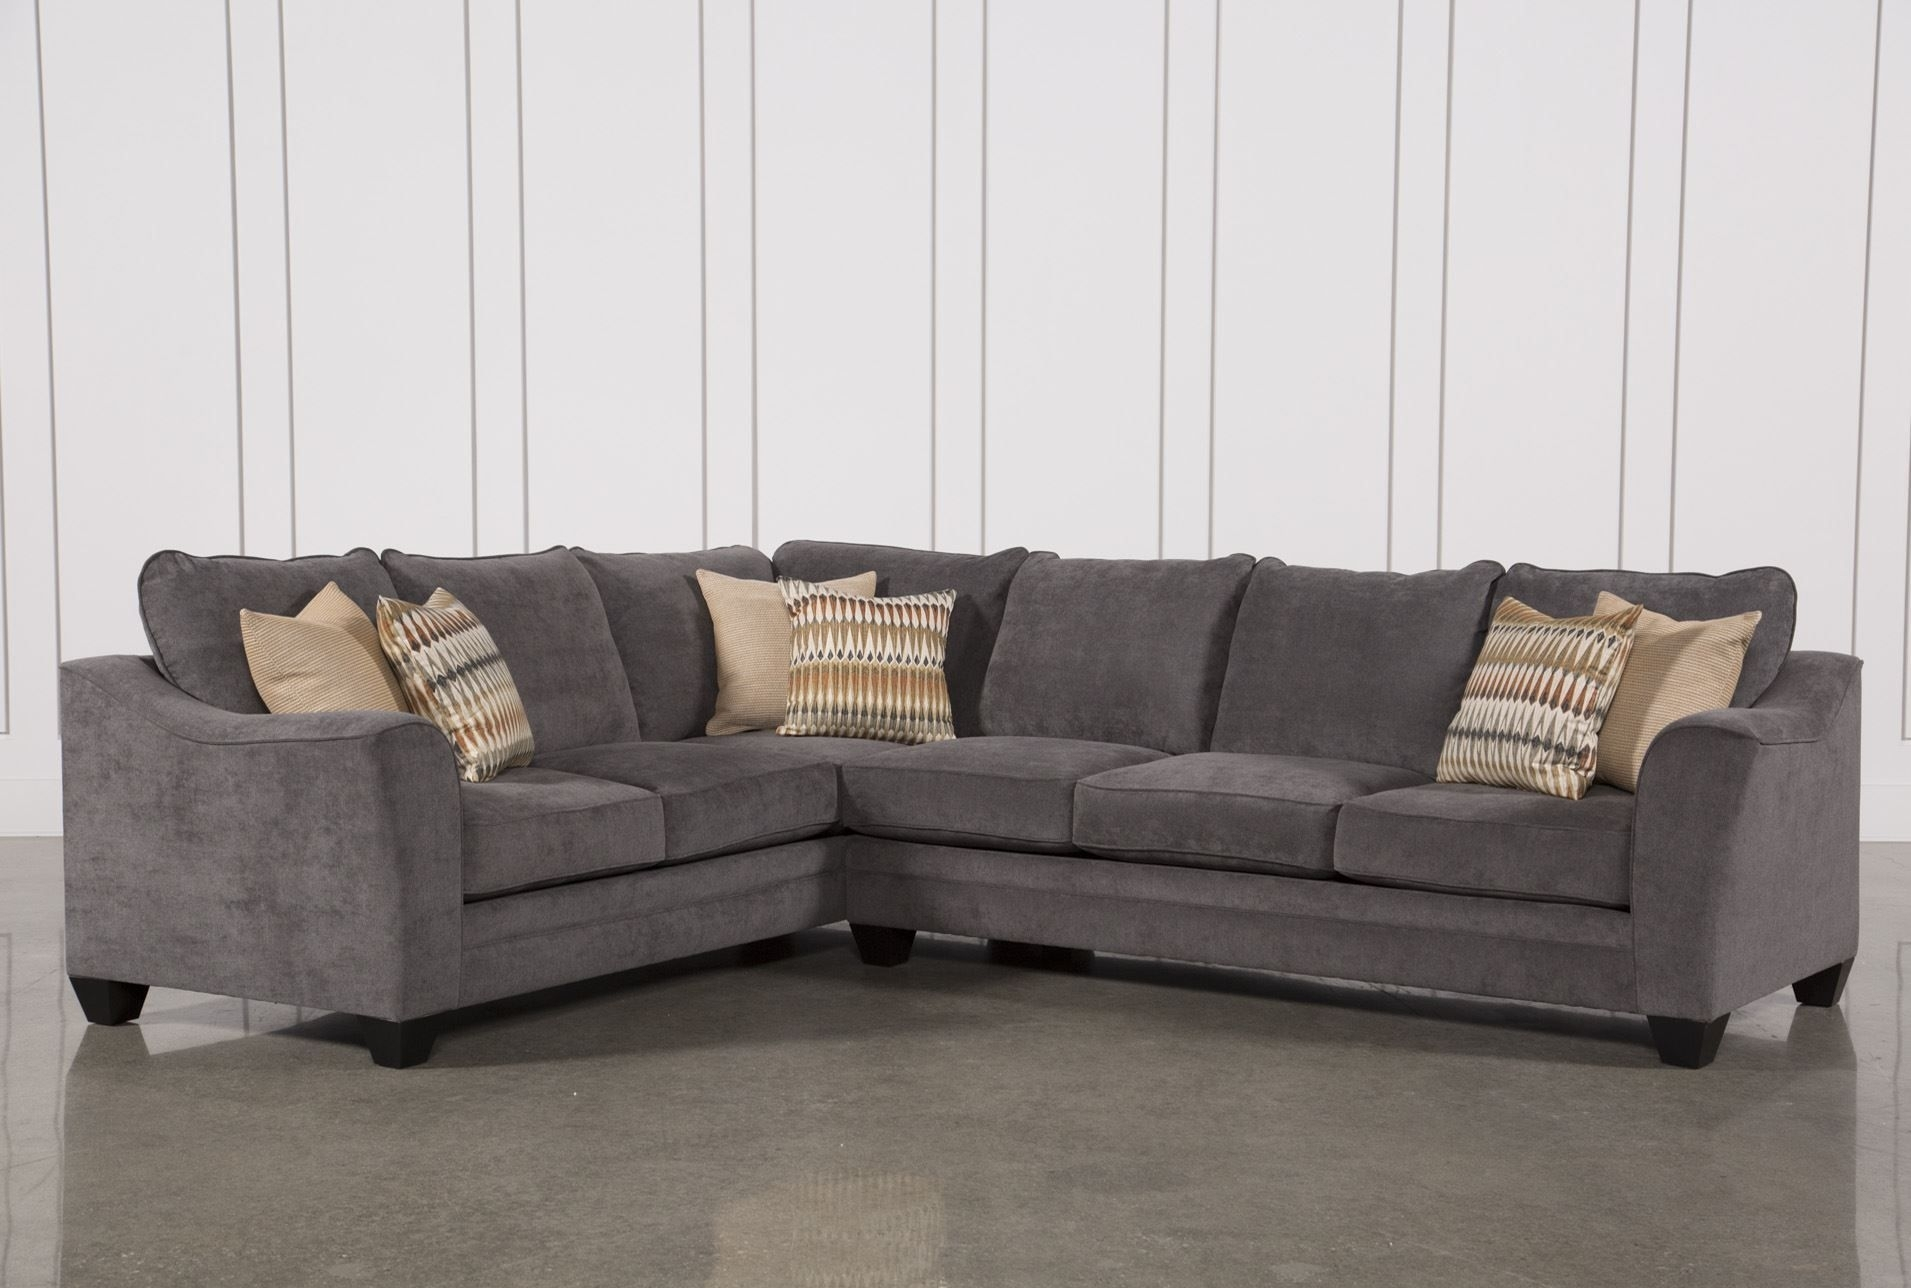 Mesa Foam 2 Piece Sectional | Cute Apartment Ideas | Pinterest Inside Harper Foam 3 Piece Sectionals With Raf Chaise (View 5 of 25)